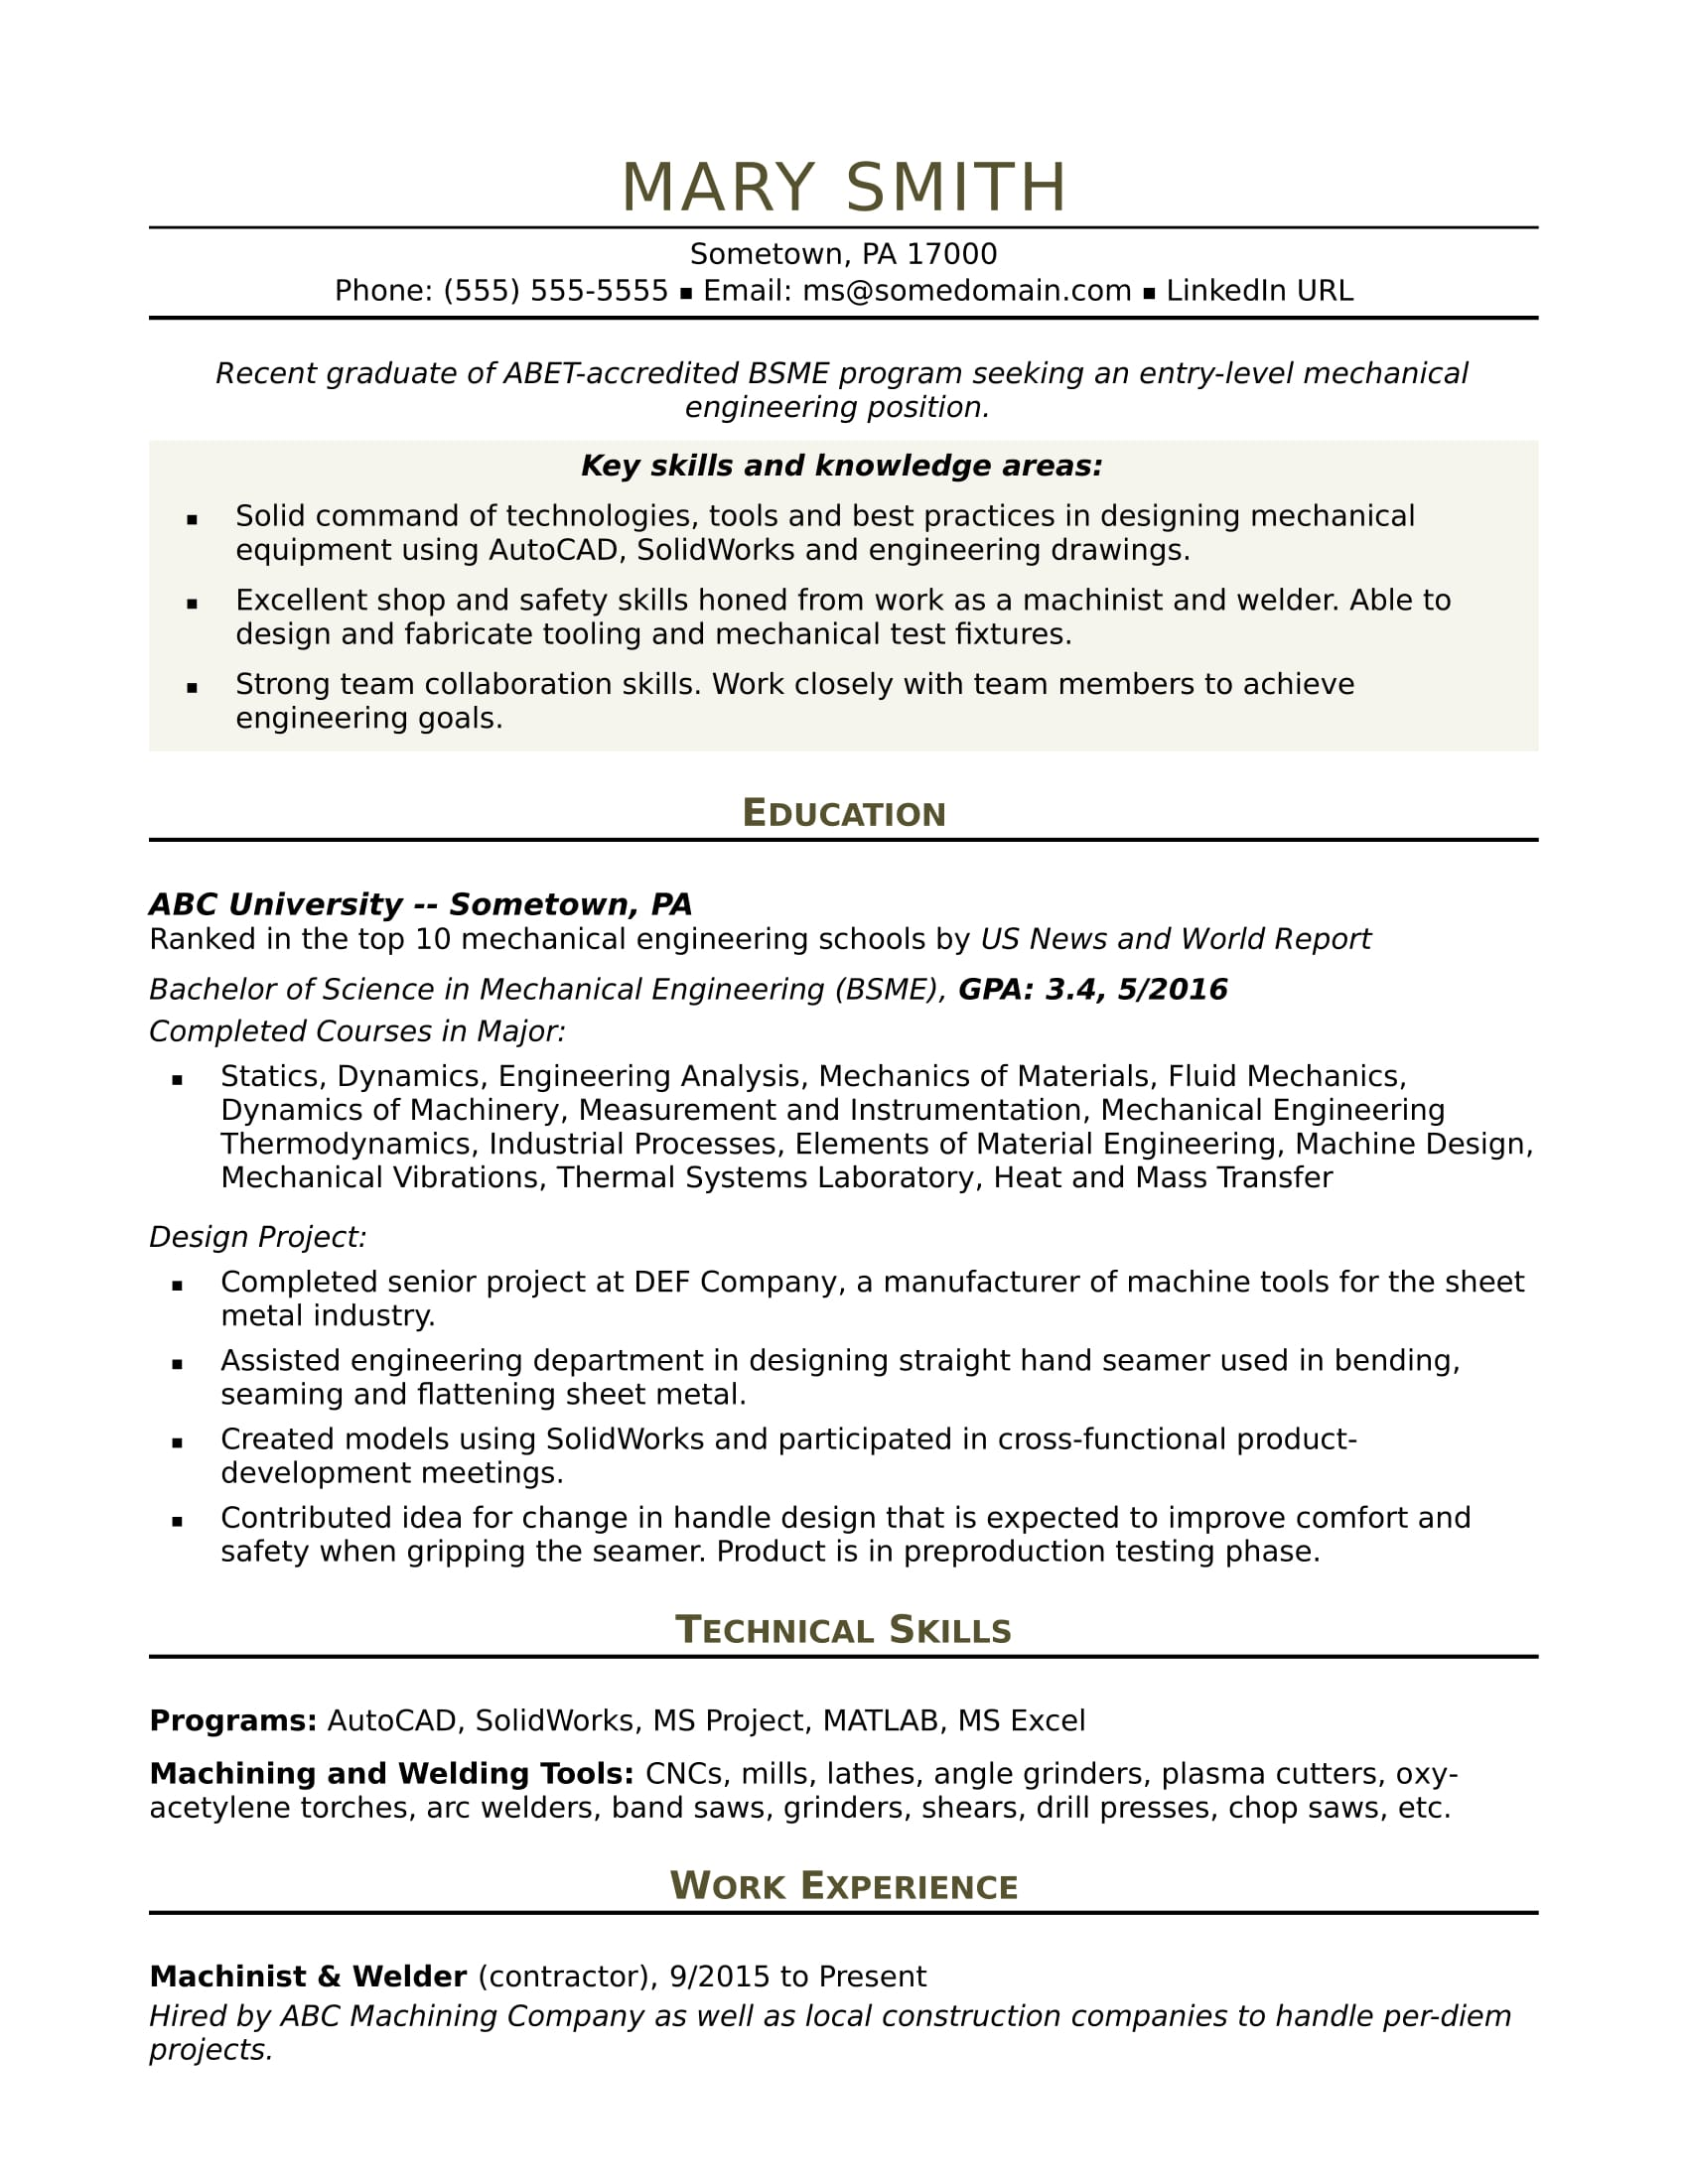 Sample Resume For An Entry Level Mechanical Engineer  What Are Good Skills To Put On A Resume